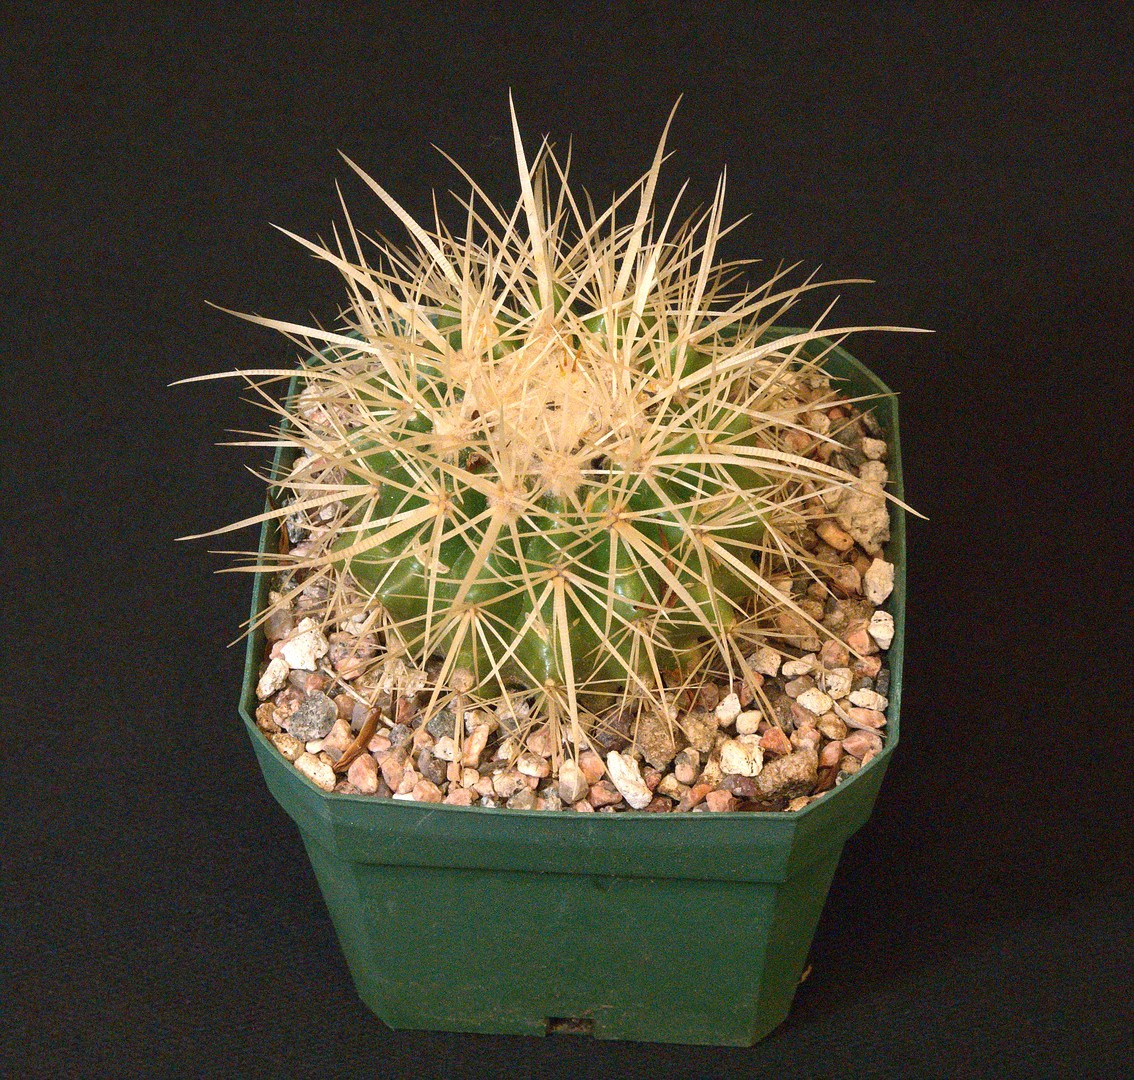 SCCSS 2020 March - Winner Intermediate Cactus - Bernard Johnson - Echinocactus grusonii 'Golden Barrel'